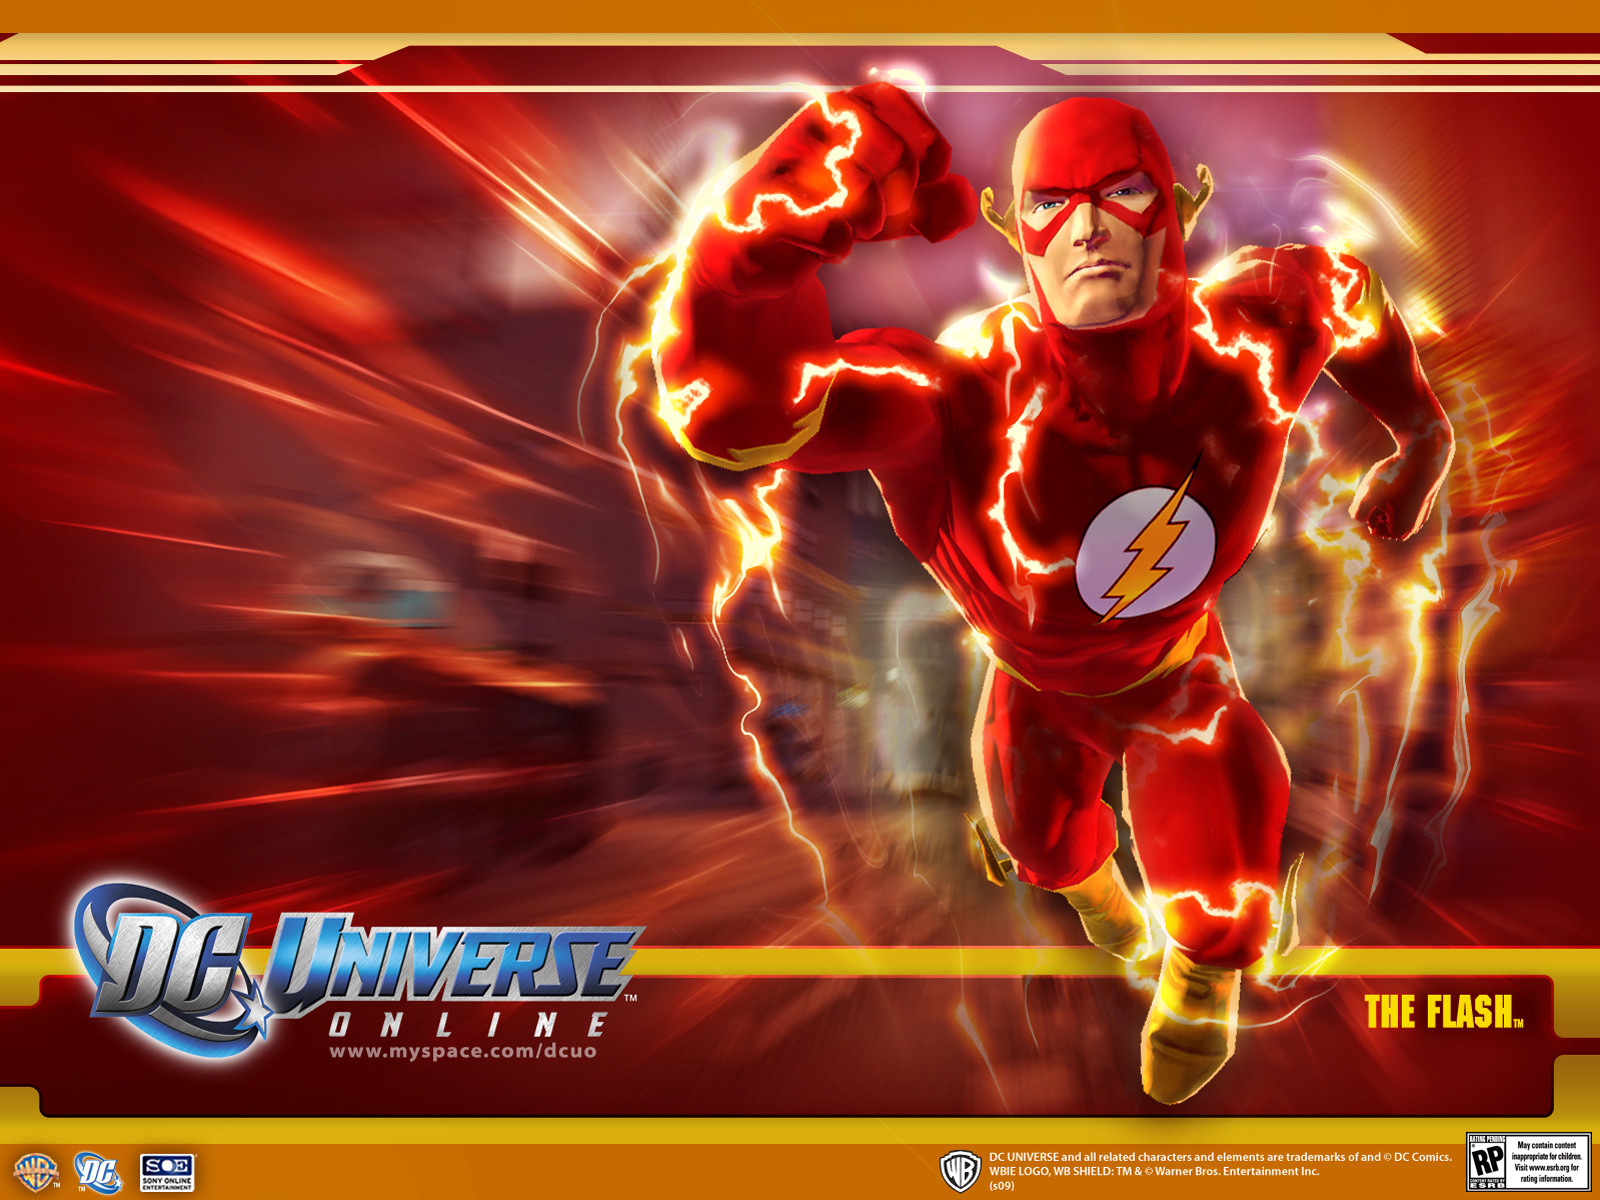 The Flash  Superhero Games Wallpaper Image featuring Dc Universe